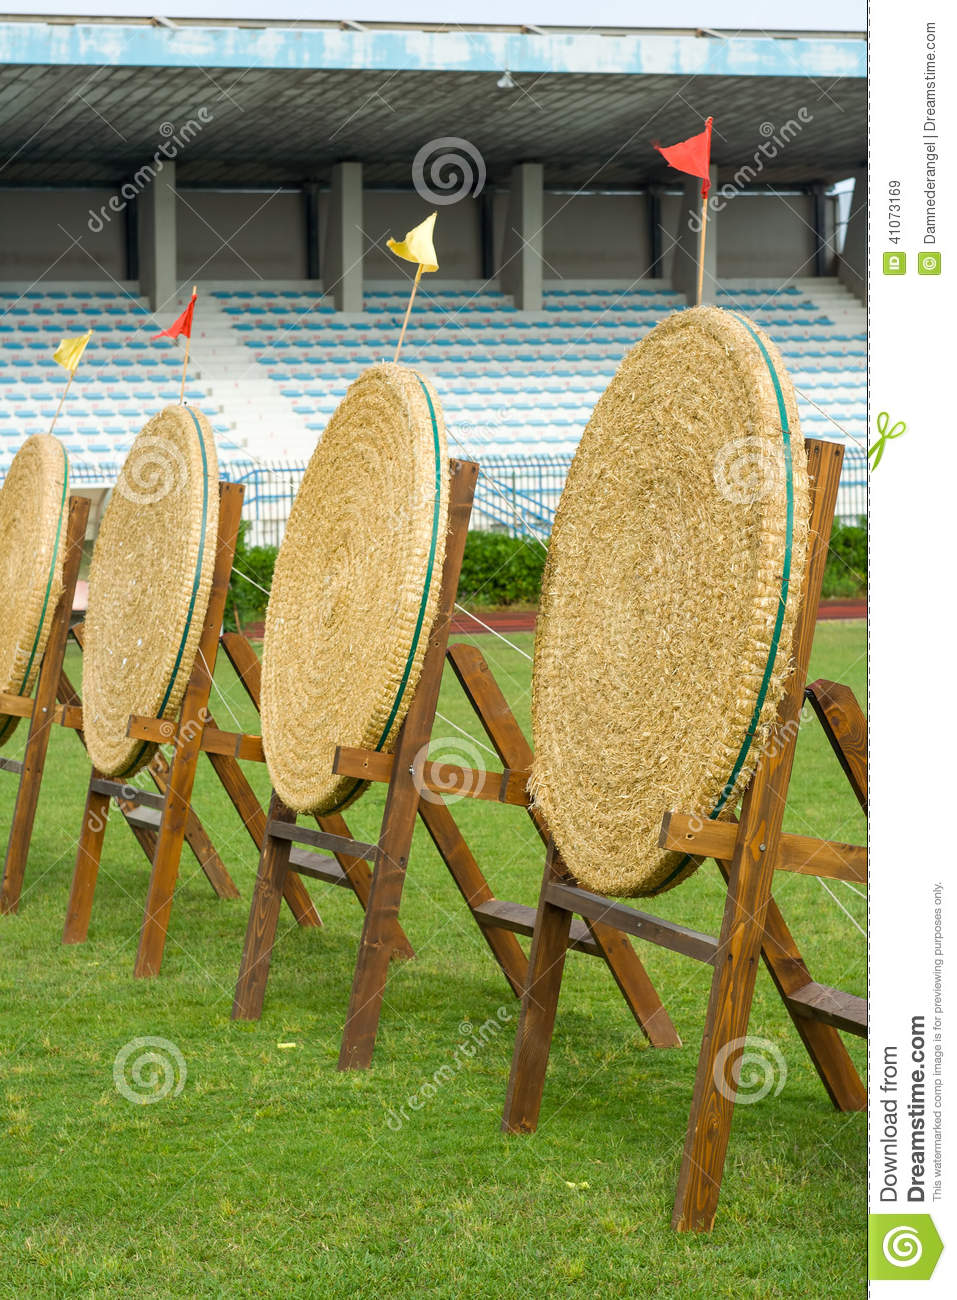 Archery Straw Empty Targets On Green Field Stock Photo ...